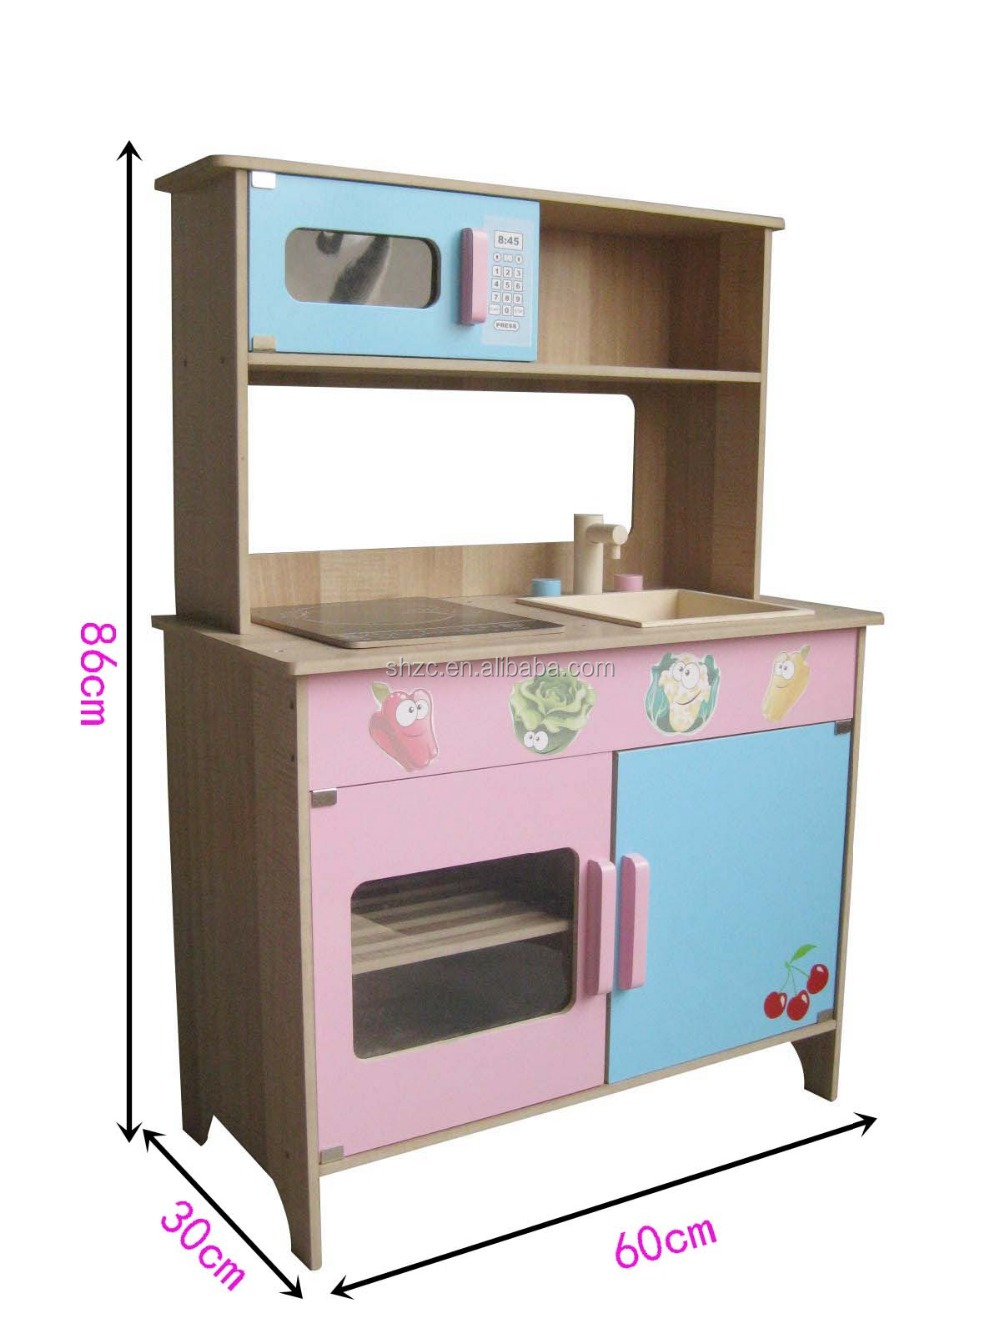 best popular wooden new kitchensex toys in india online shopping